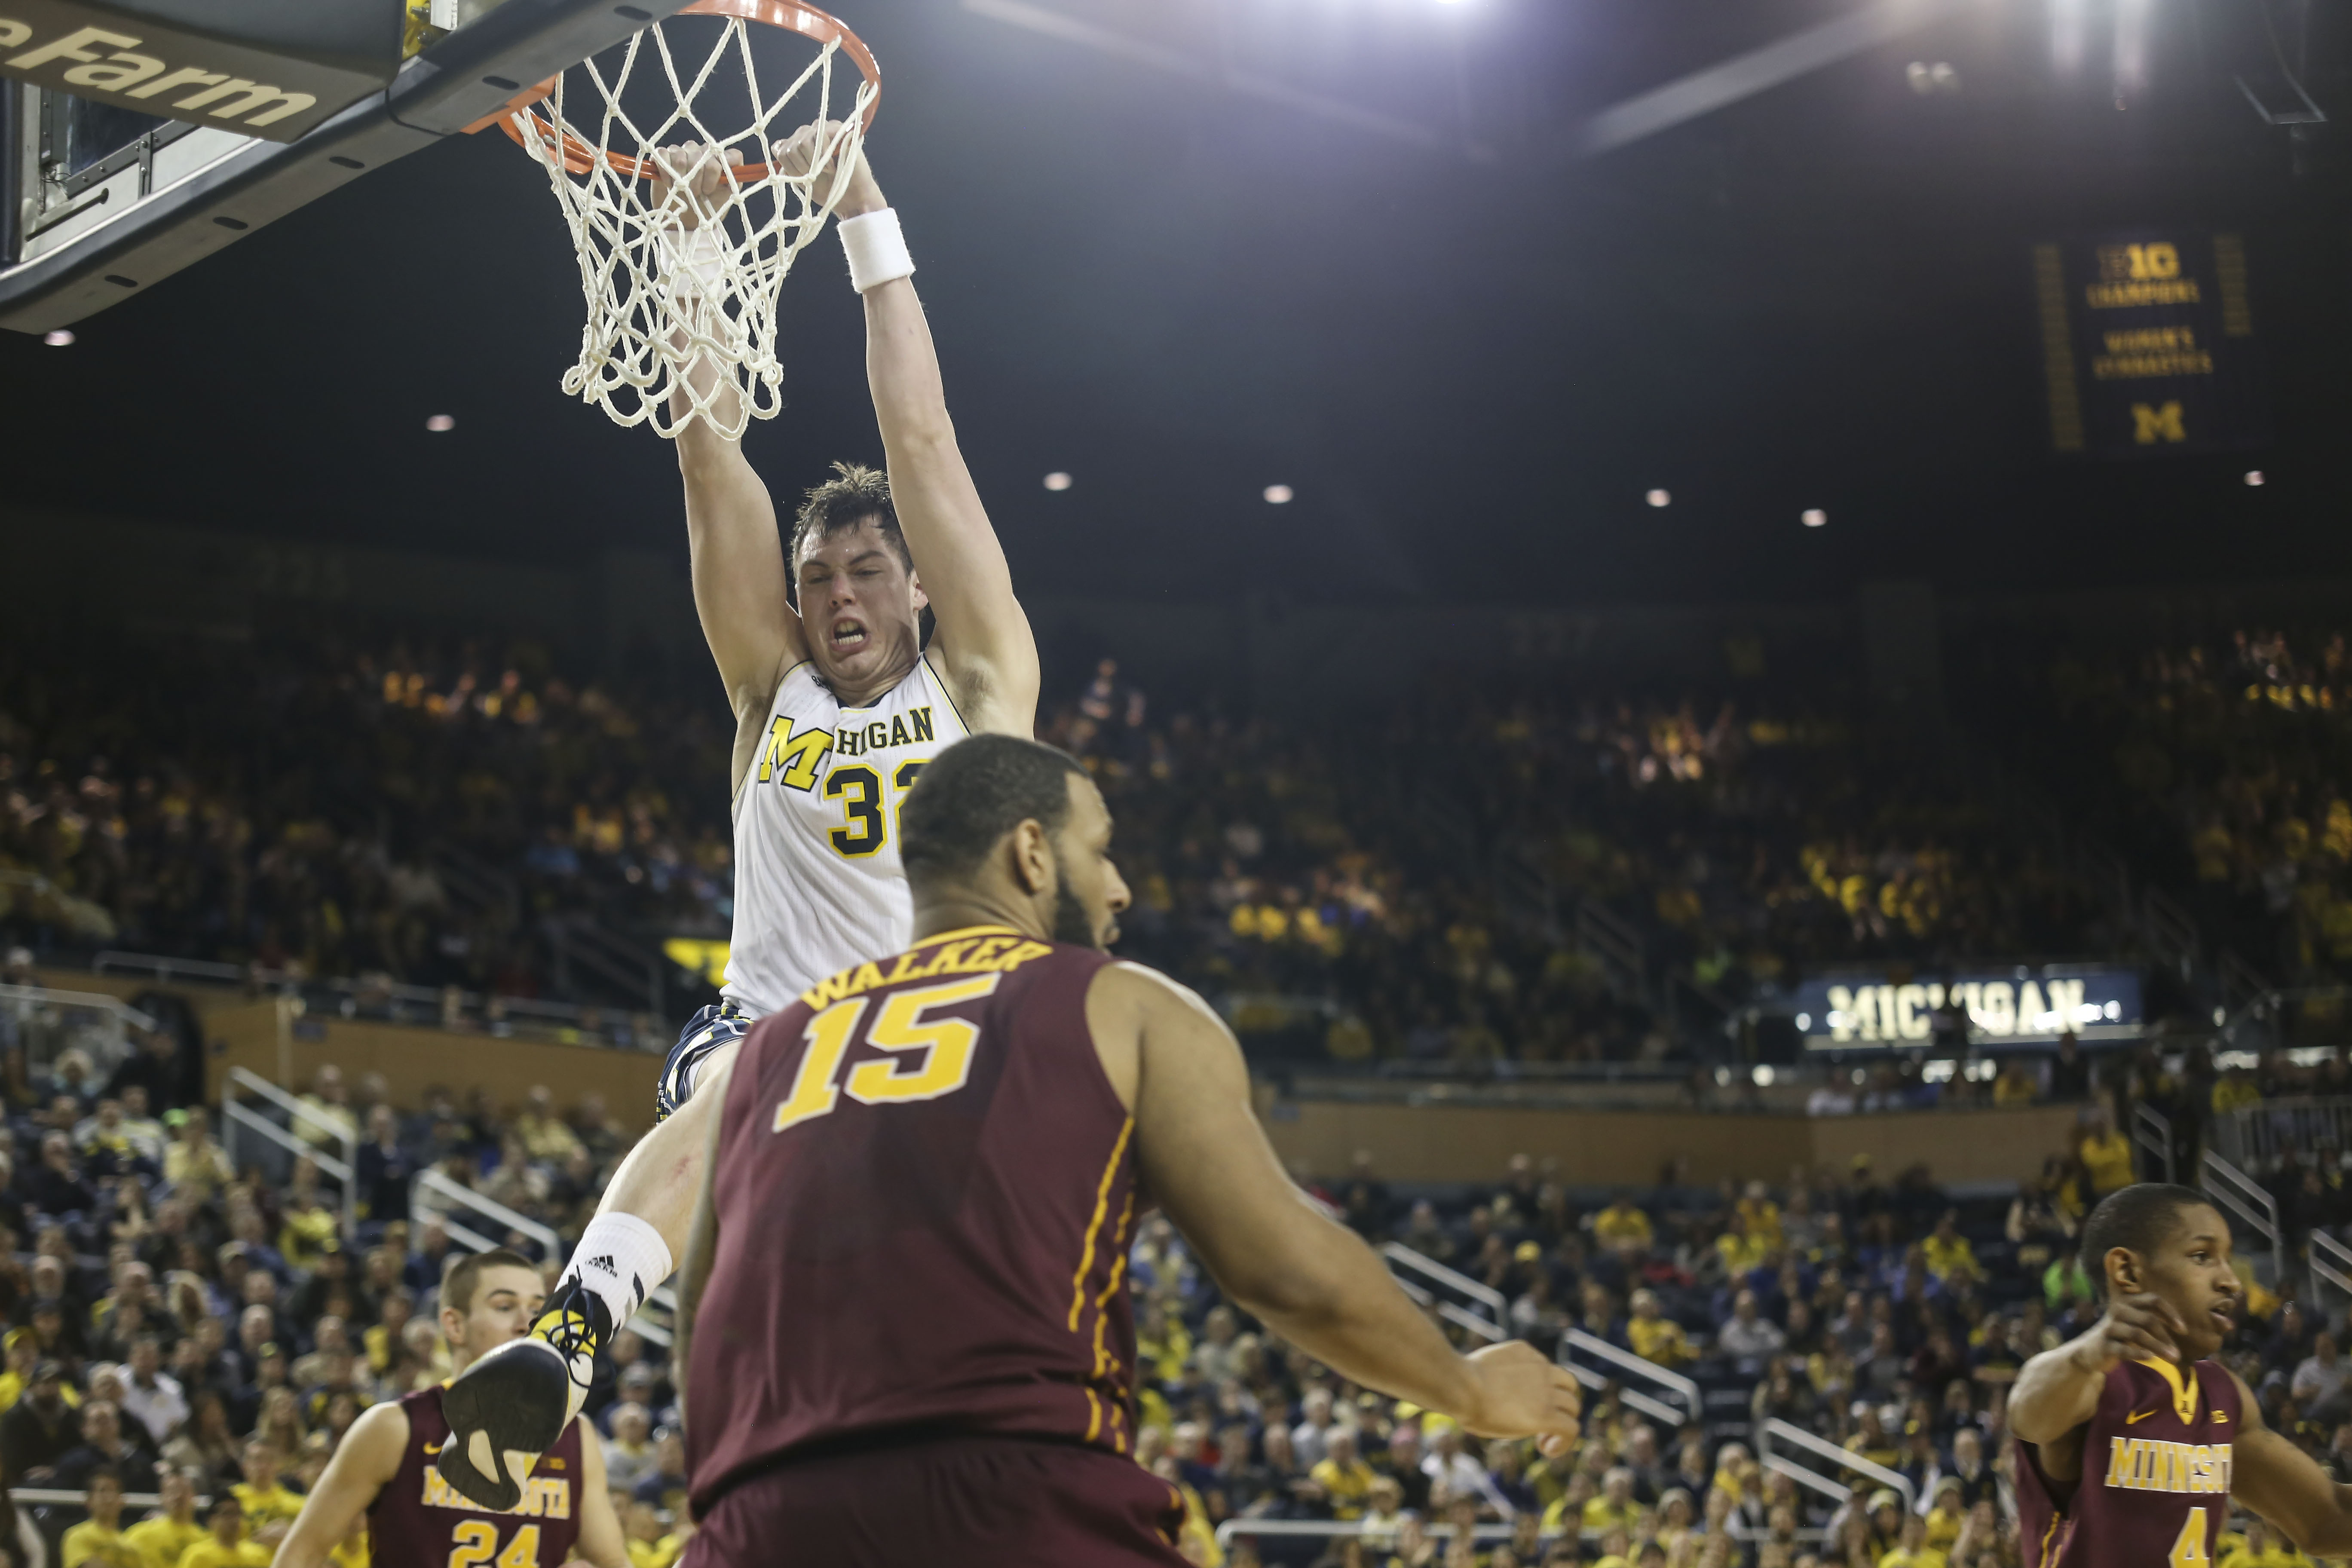 Michigan 62, Minnesota 57 – #23